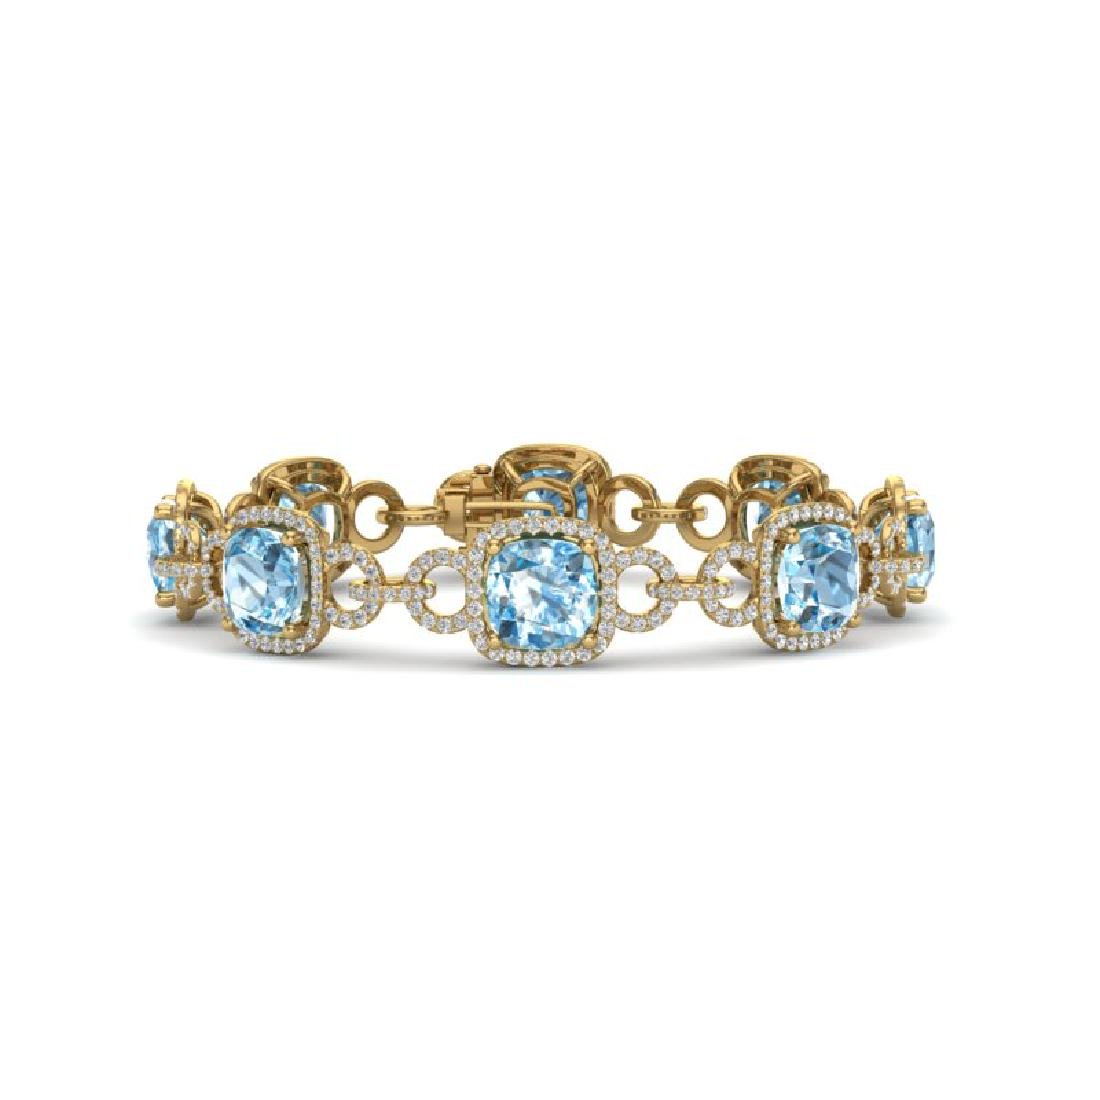 30 CTW Topaz & VS/SI Diamond Bracelet 14K Yellow Gold